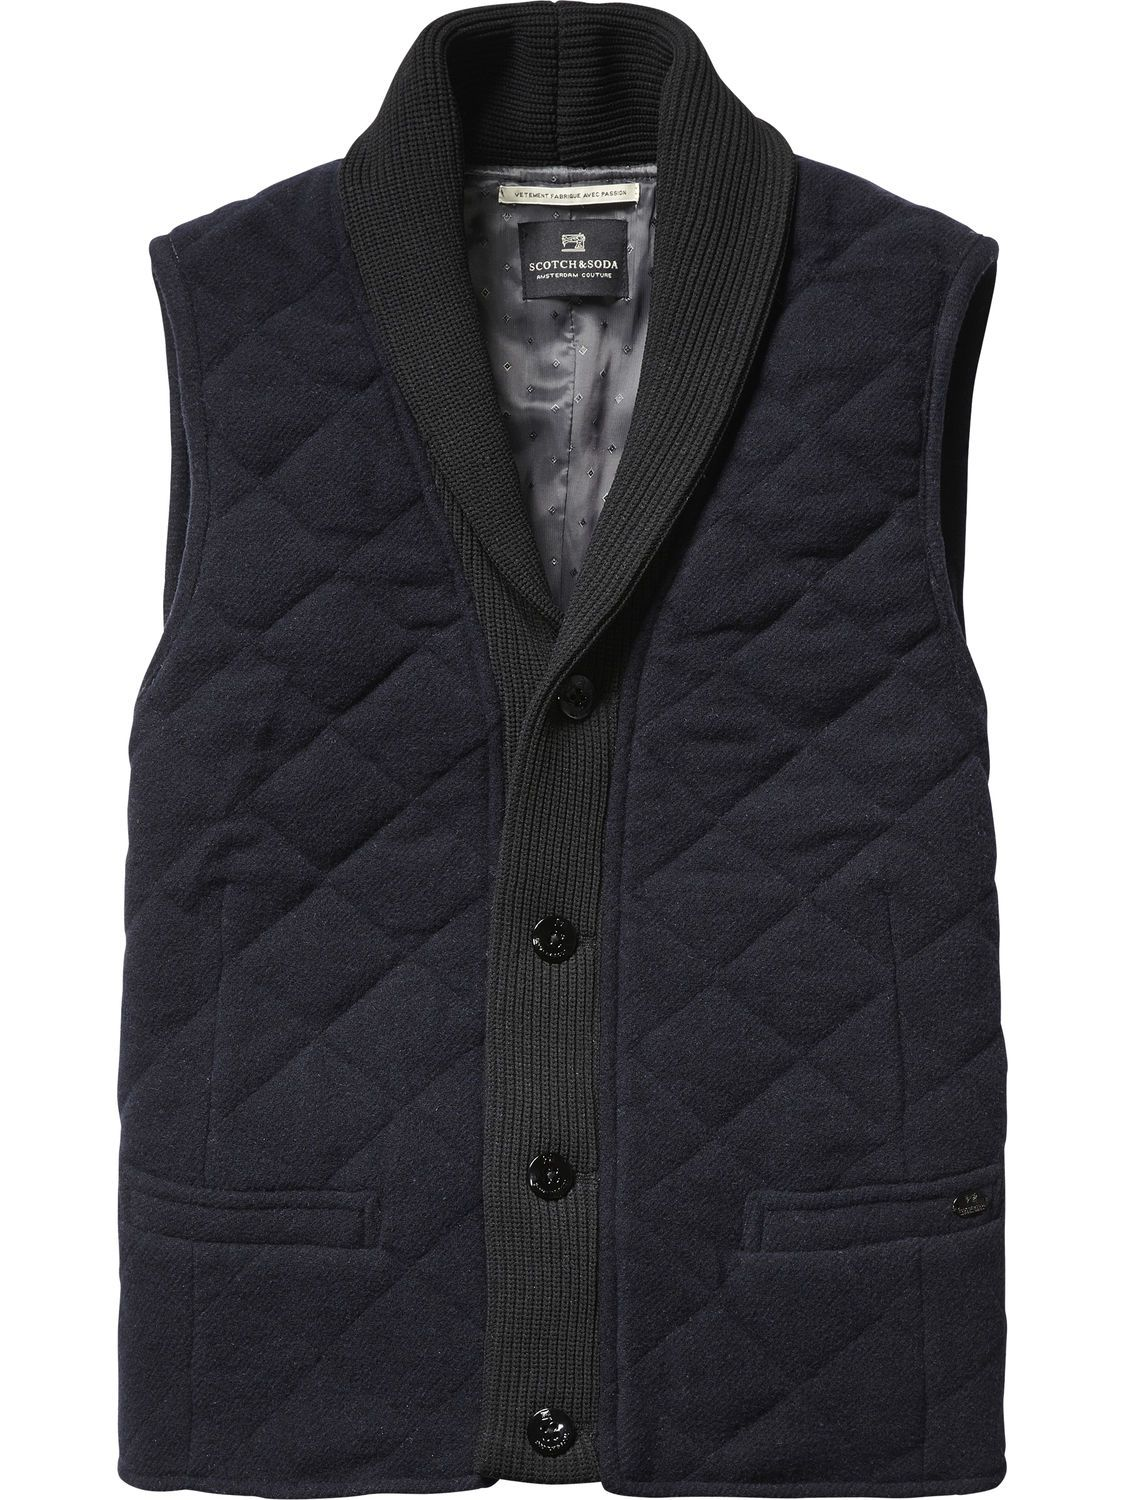 Quilted Wool Blend Gilet   Gilets   Men s Clothing at Scotch   Soda ... 8abeba948f0f